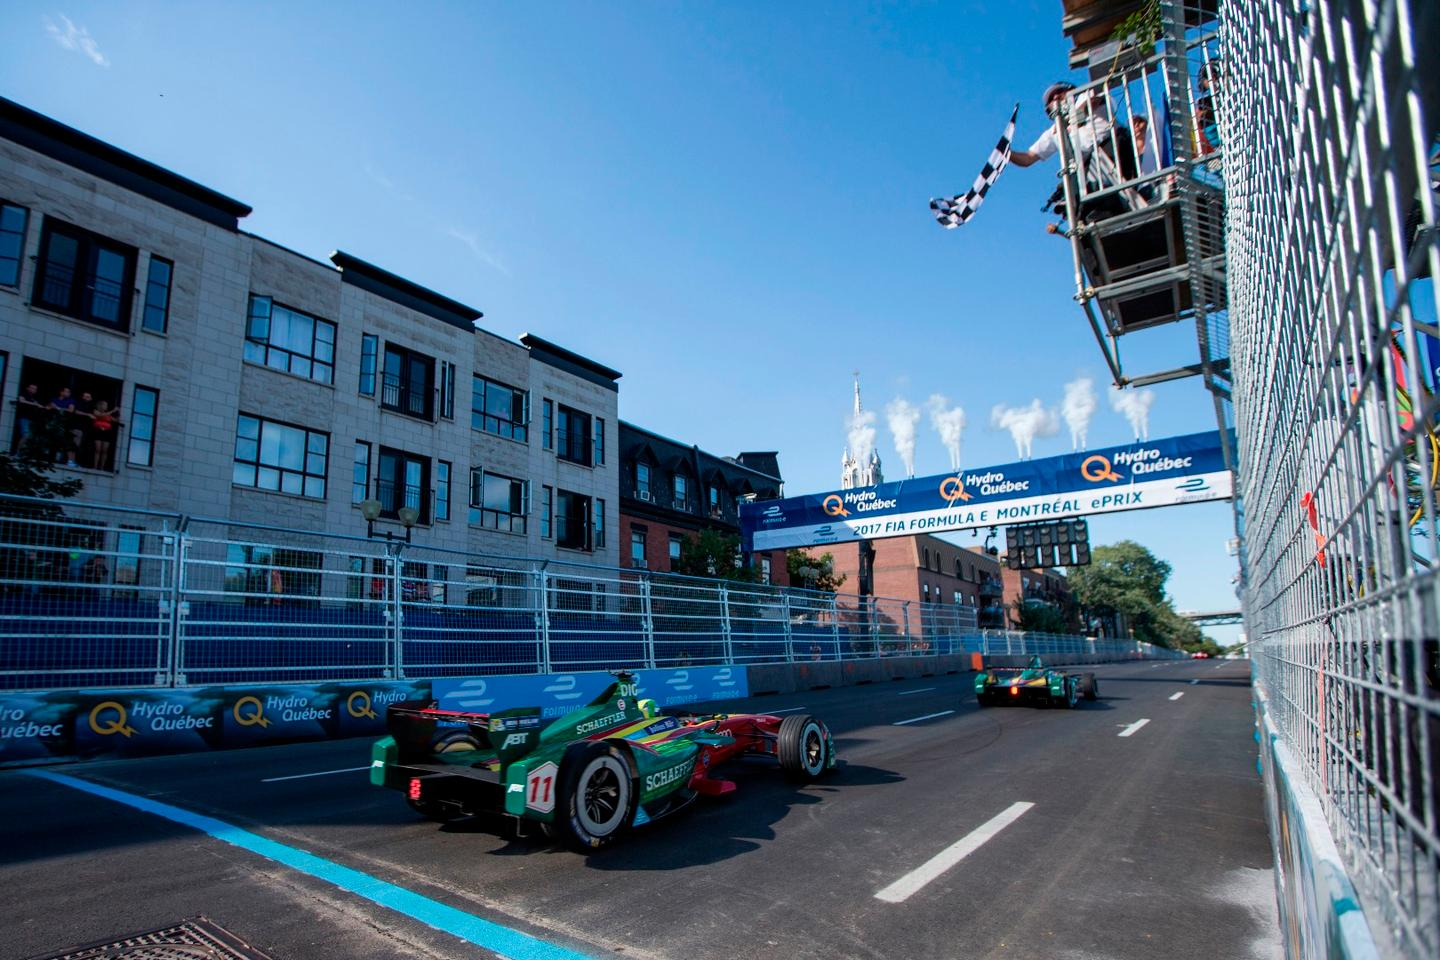 The two ABT Sportsline cars cross the line in Montreal